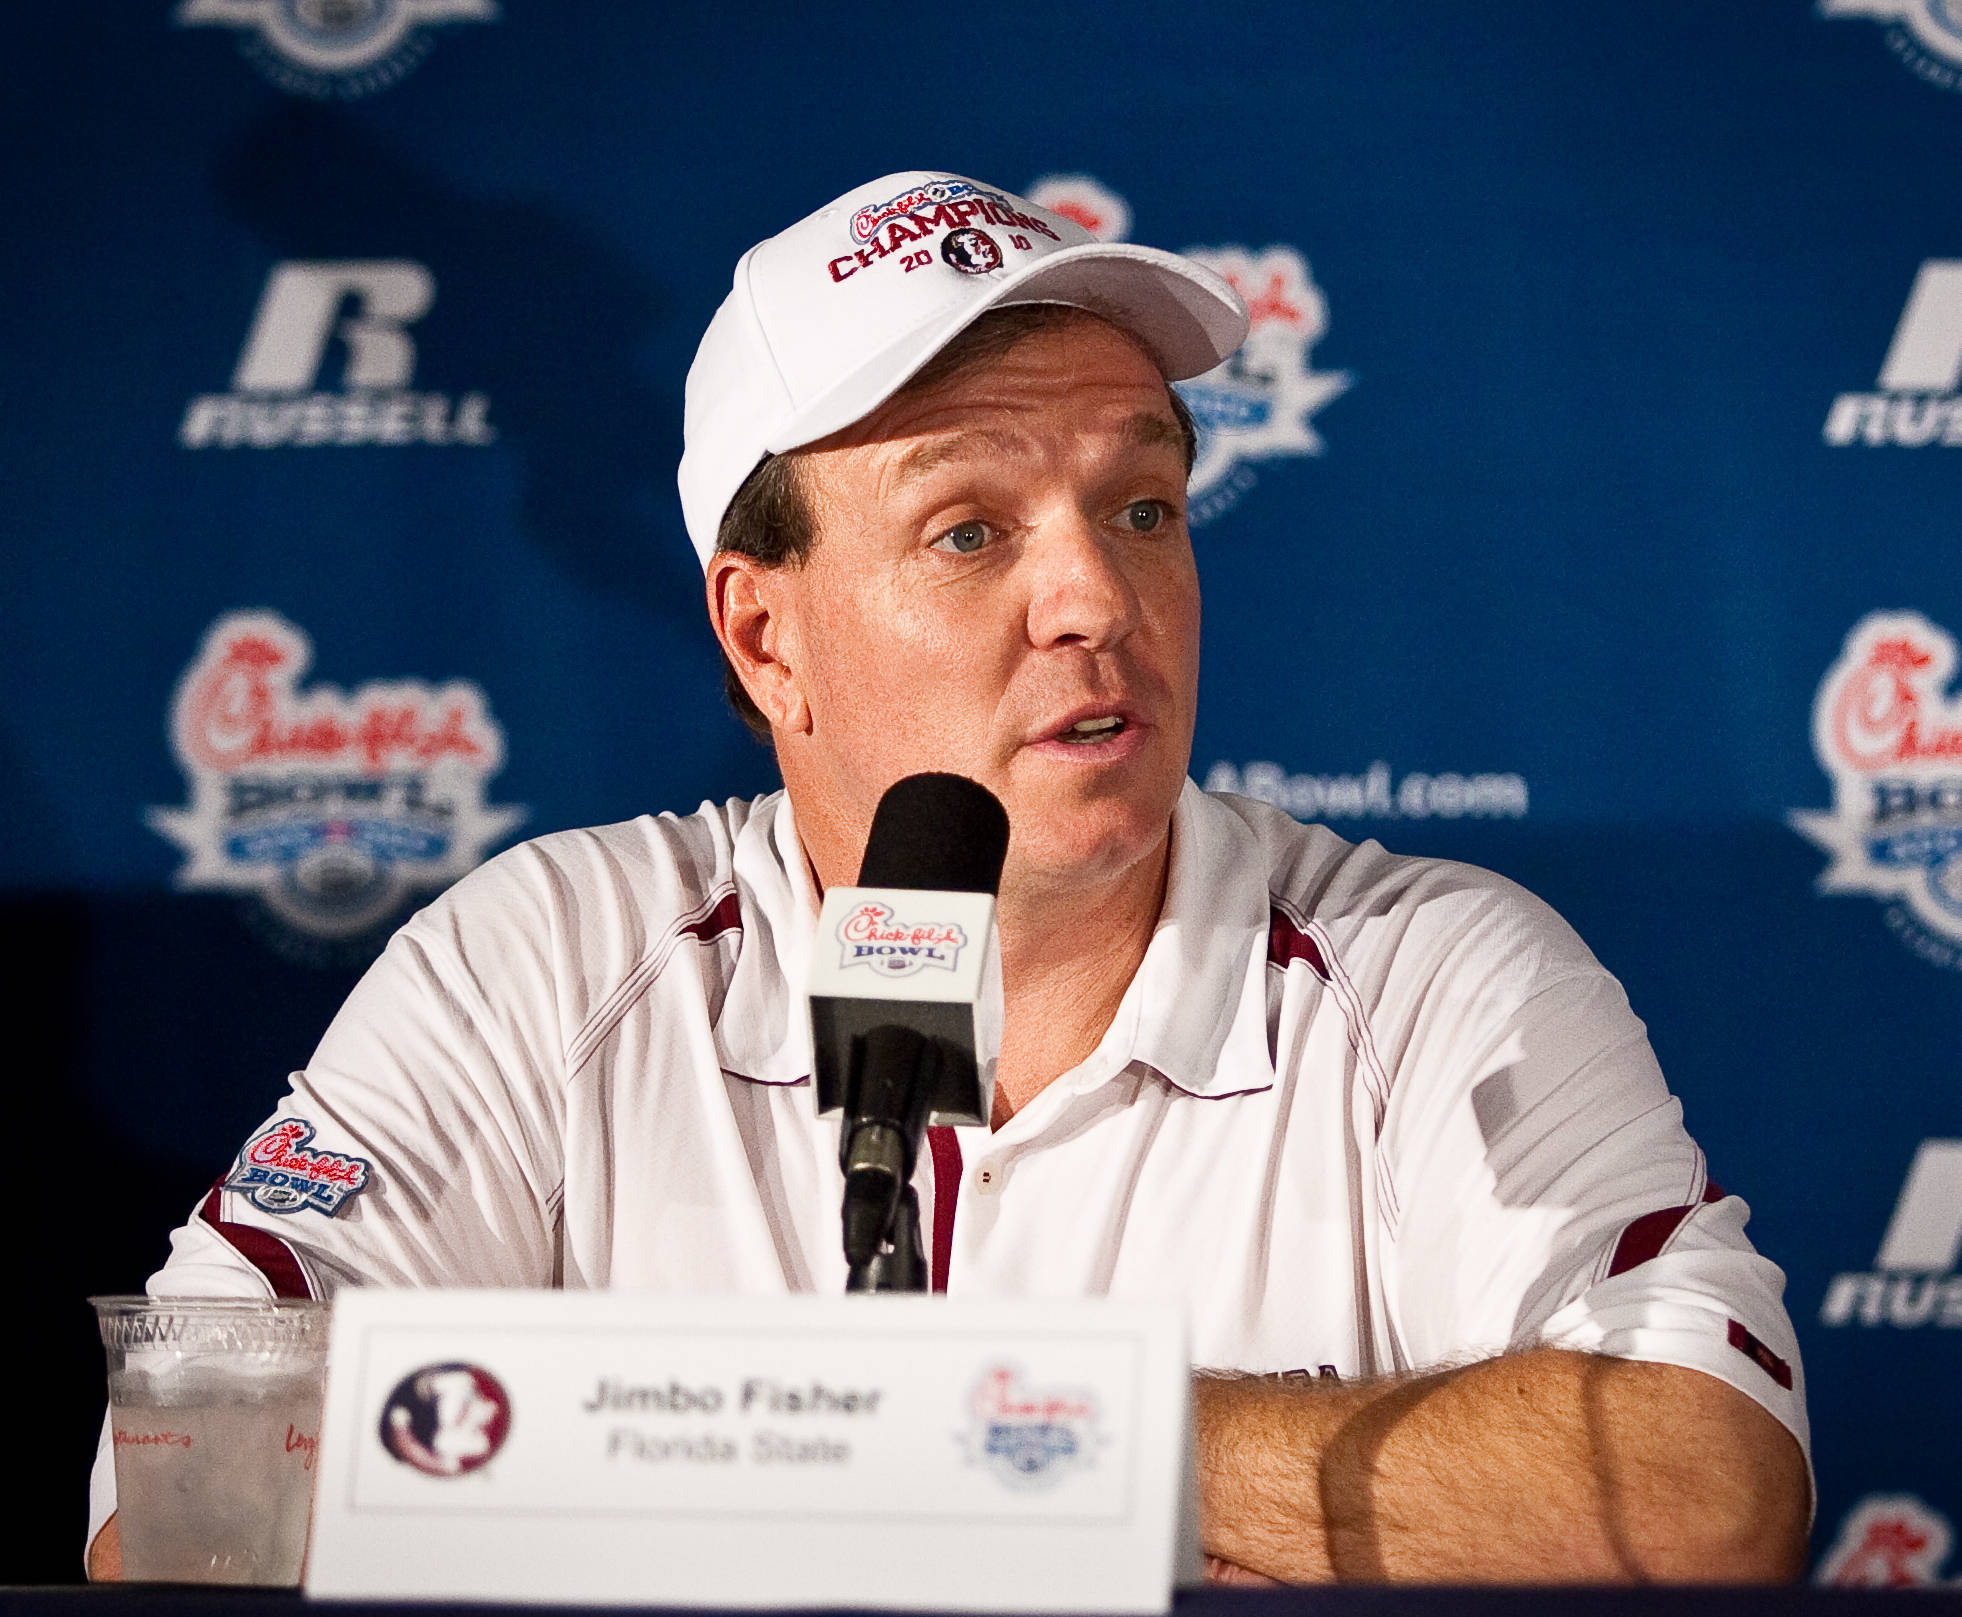 Jimbo Fisher at his postgame press conference